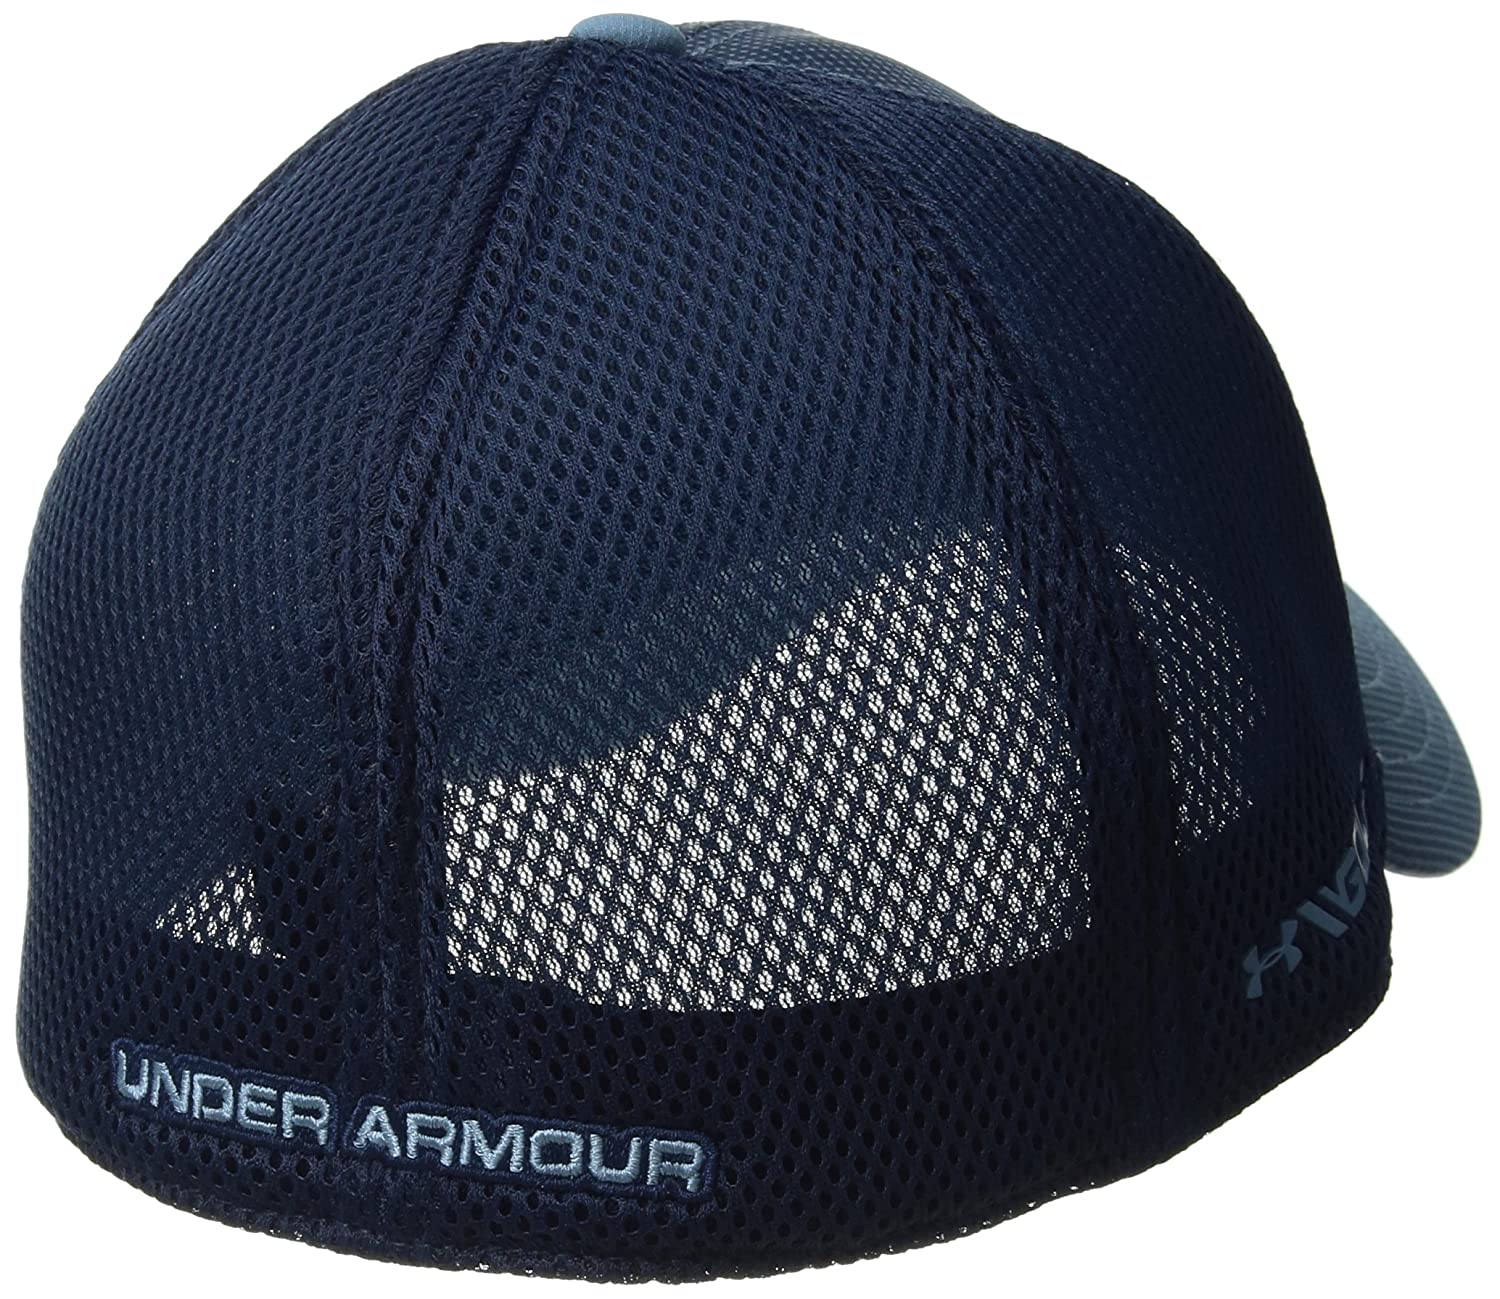 new arrival da5b5 3ebe1 Amazon.com  Under Armour Mens Eagle Cap 2.0  Clothing